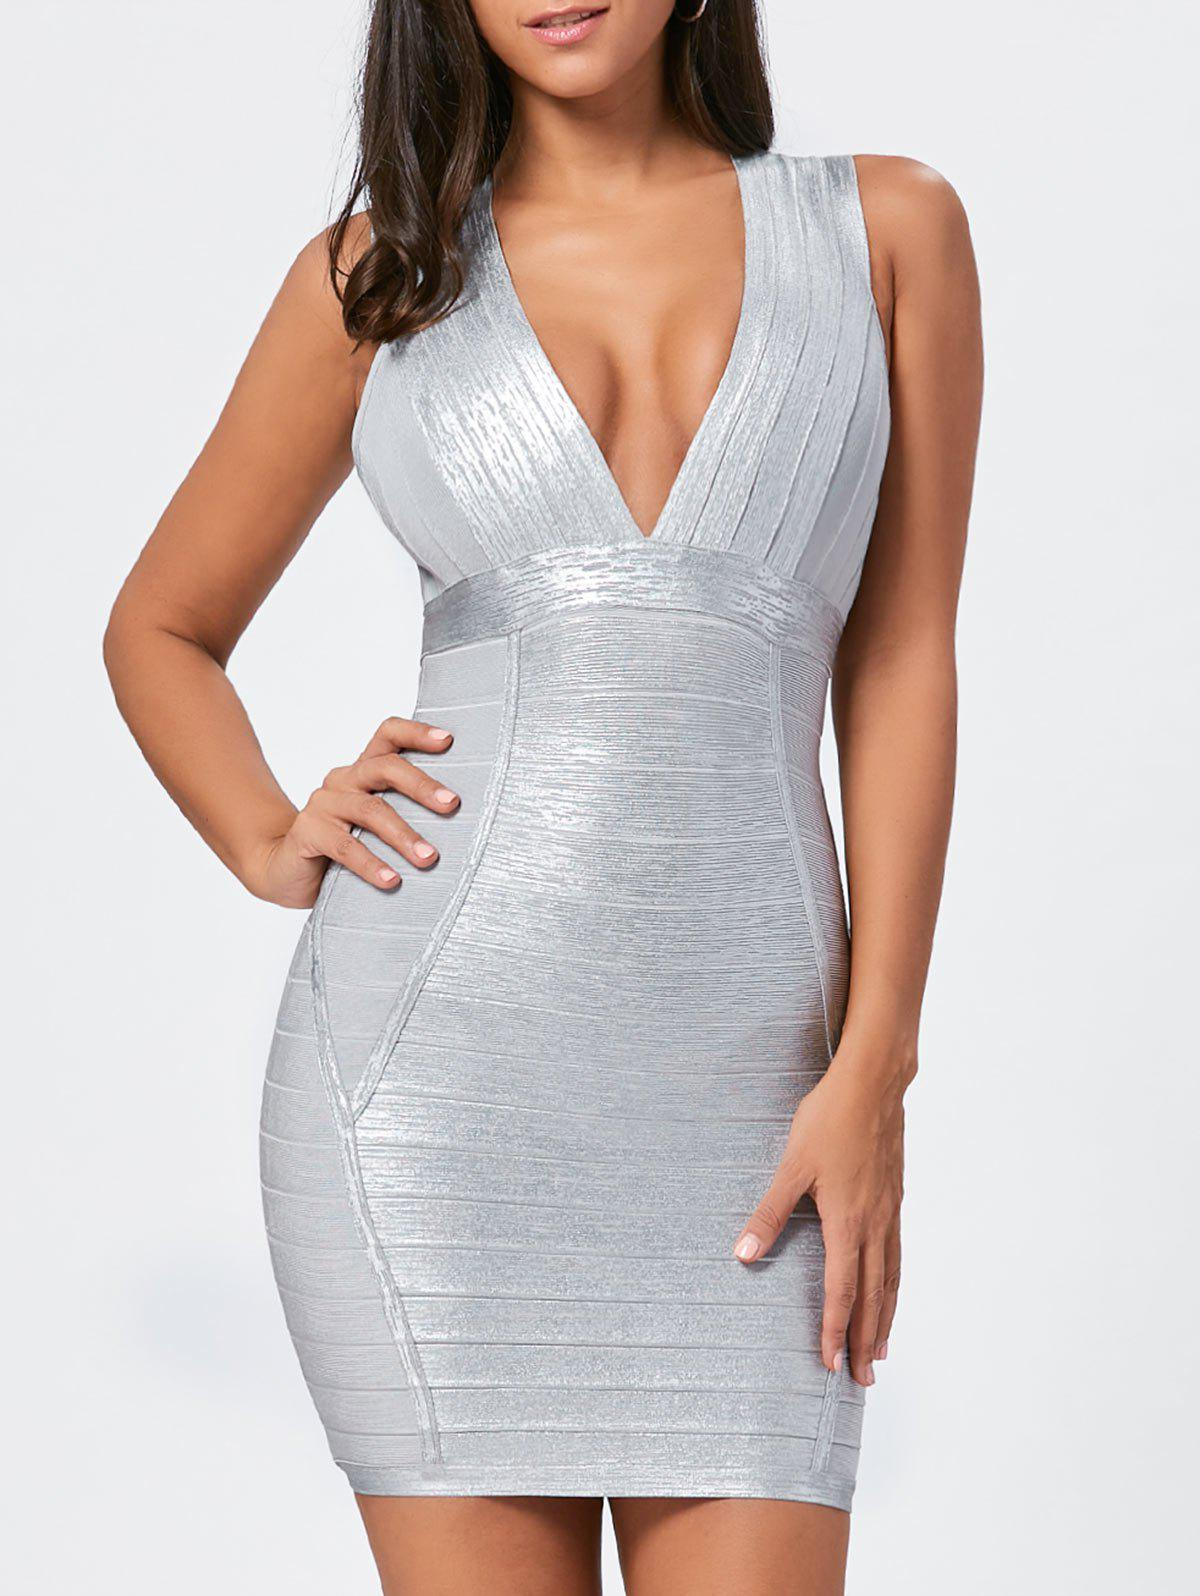 Plunging Neck Metallic Bandage Dress - SILVER M